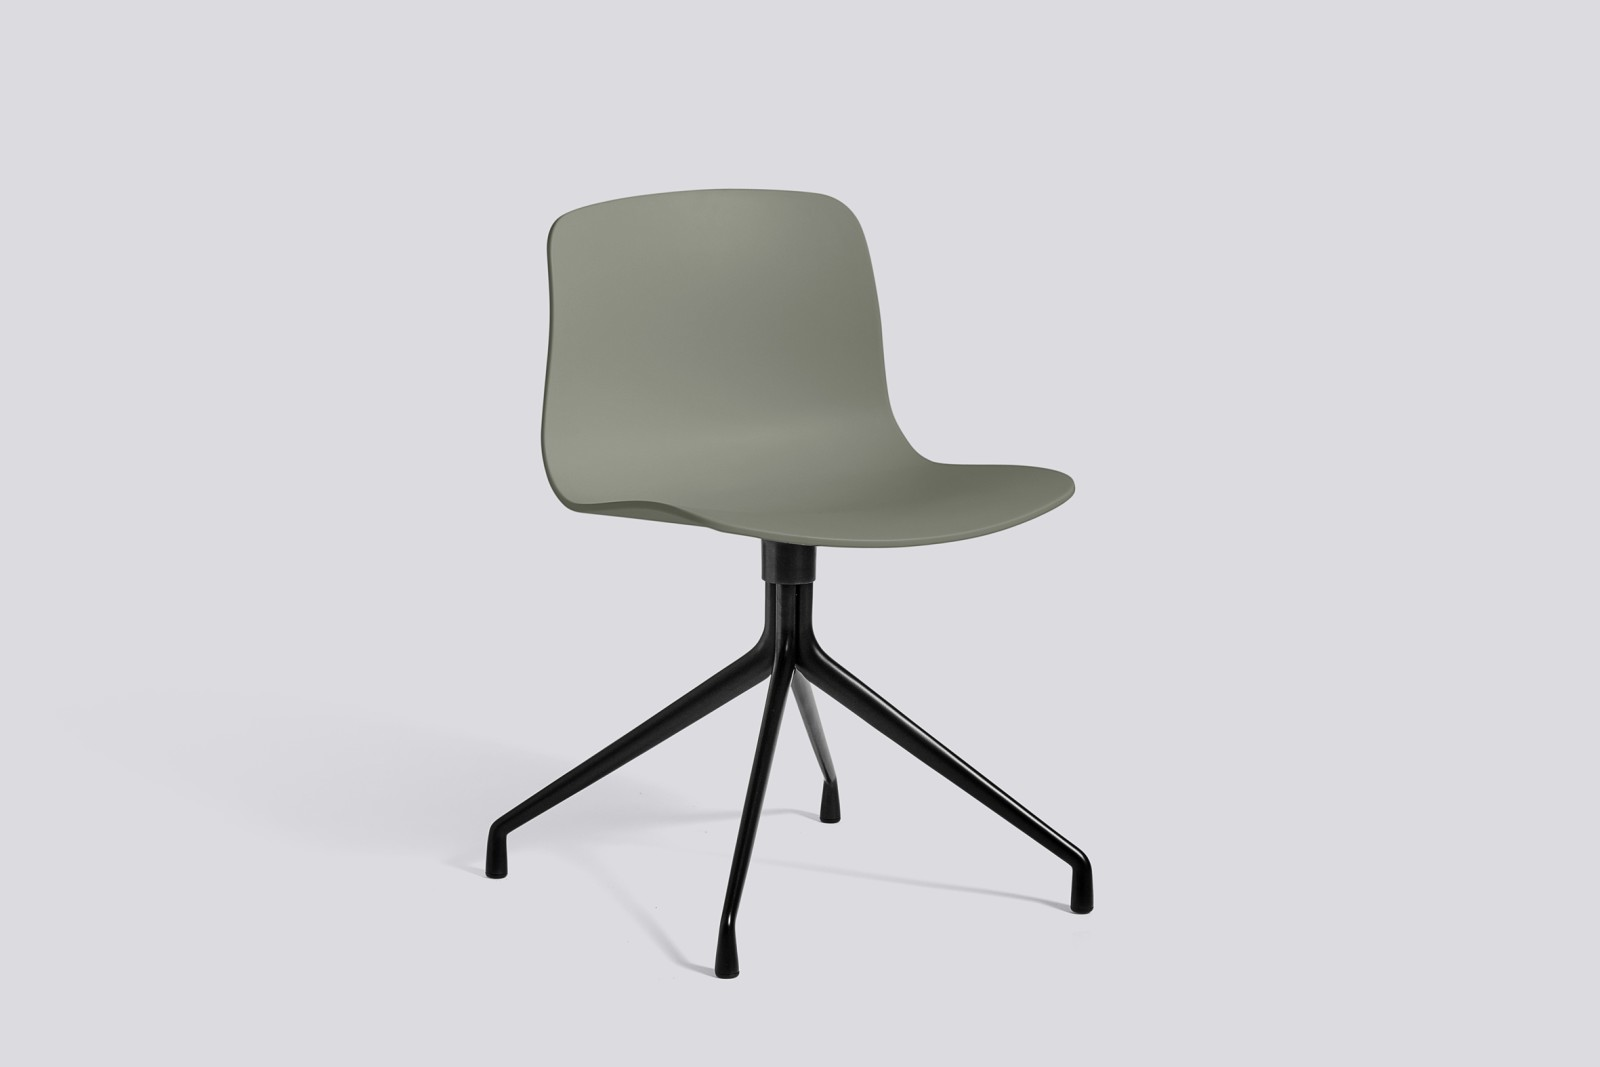 About A Chair AAC10 Dusty green, Black Powder Coated Aluminium